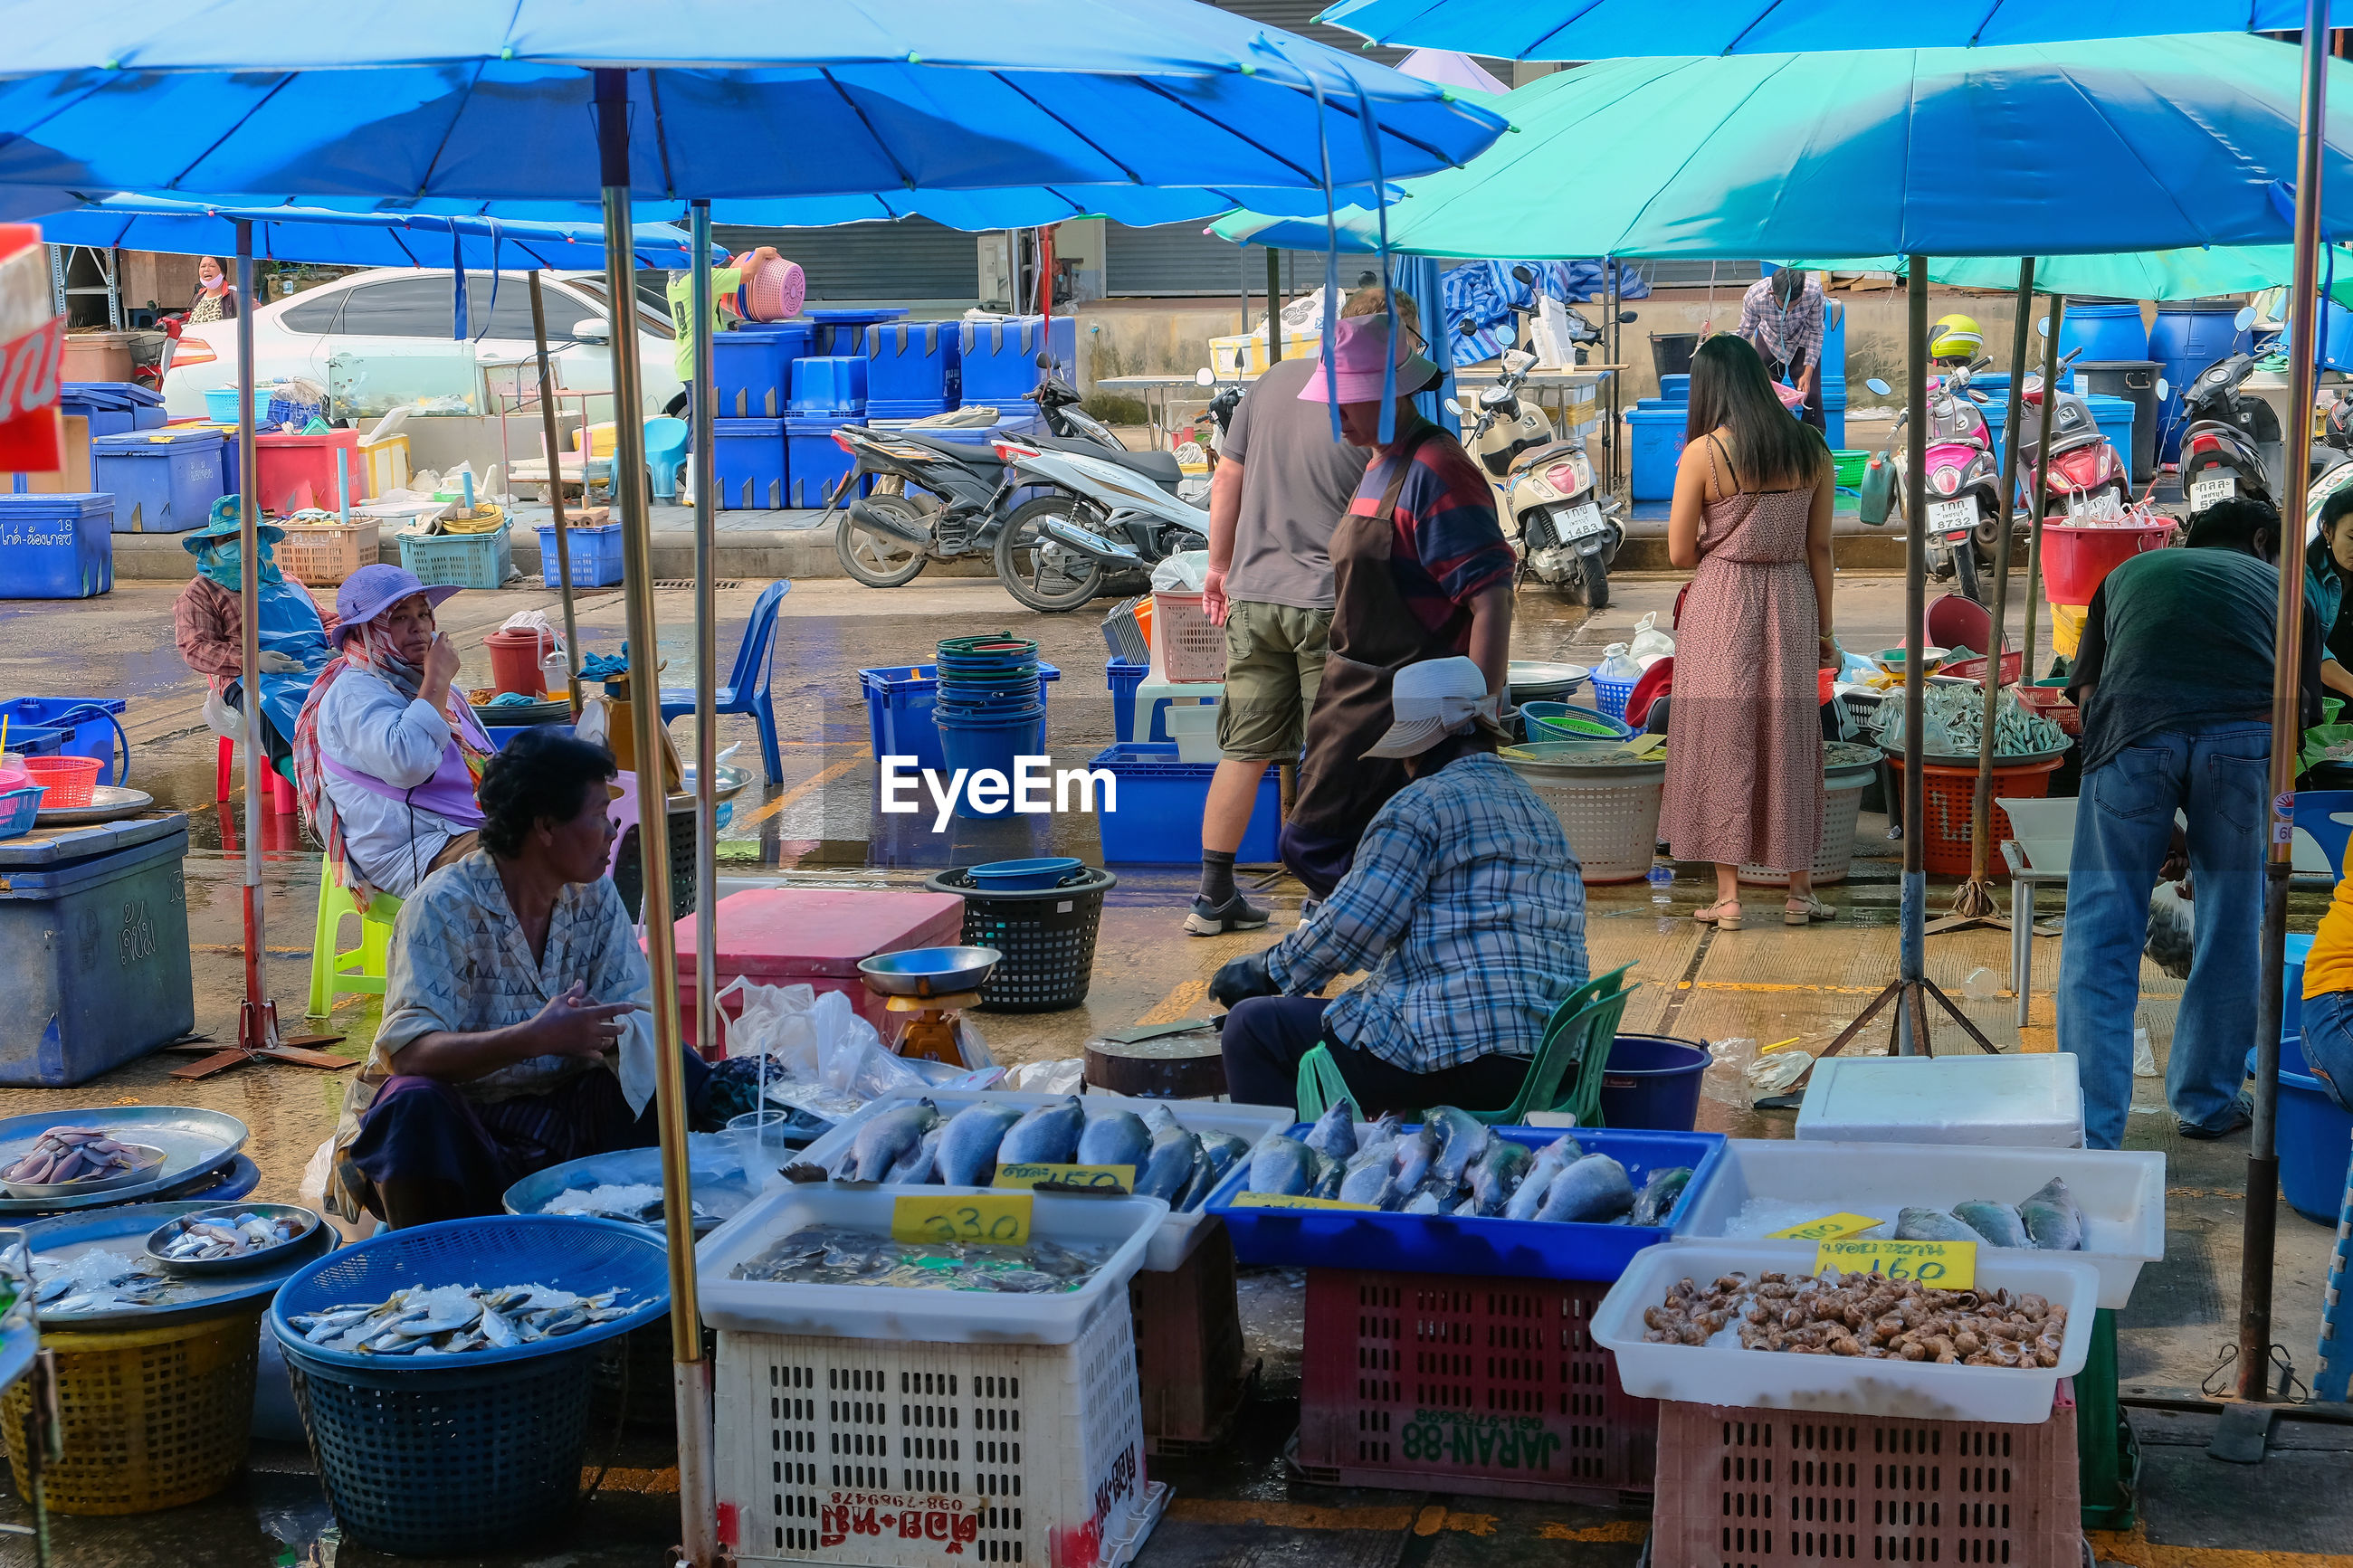 GROUP OF PEOPLE IN MARKET STALL